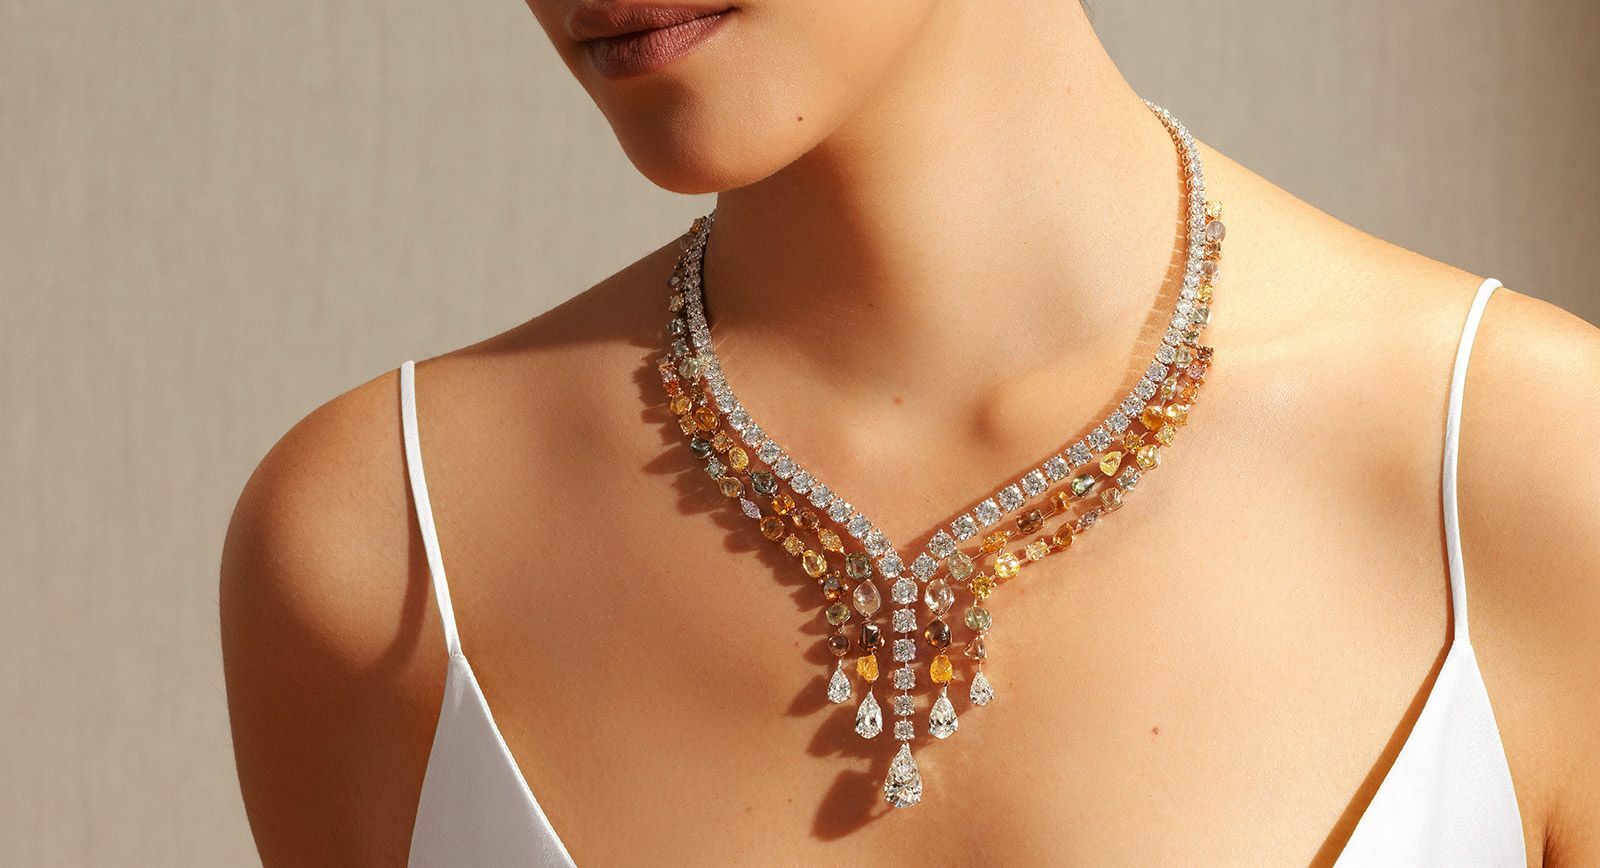 De Beers necklace